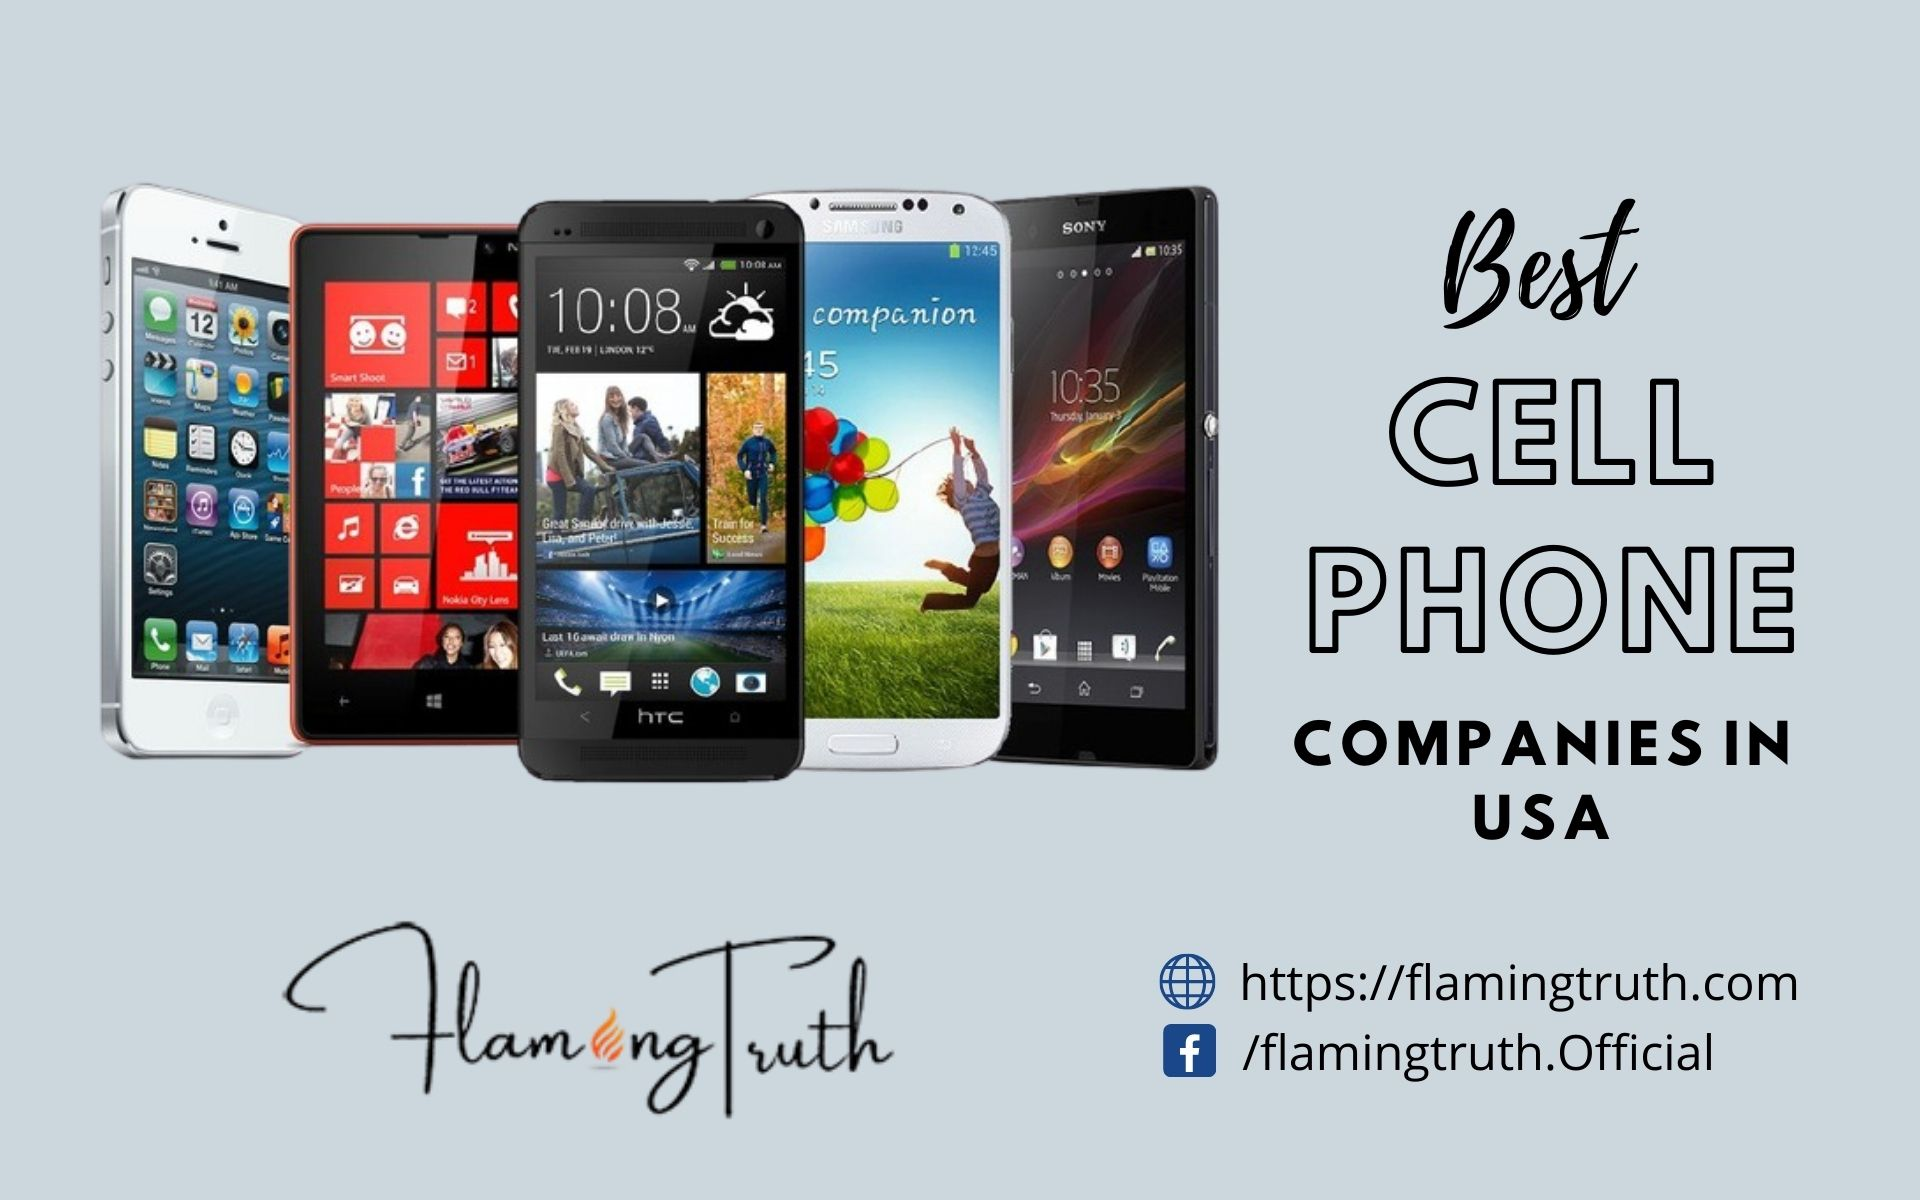 best-cell-phone-companies-in-usa